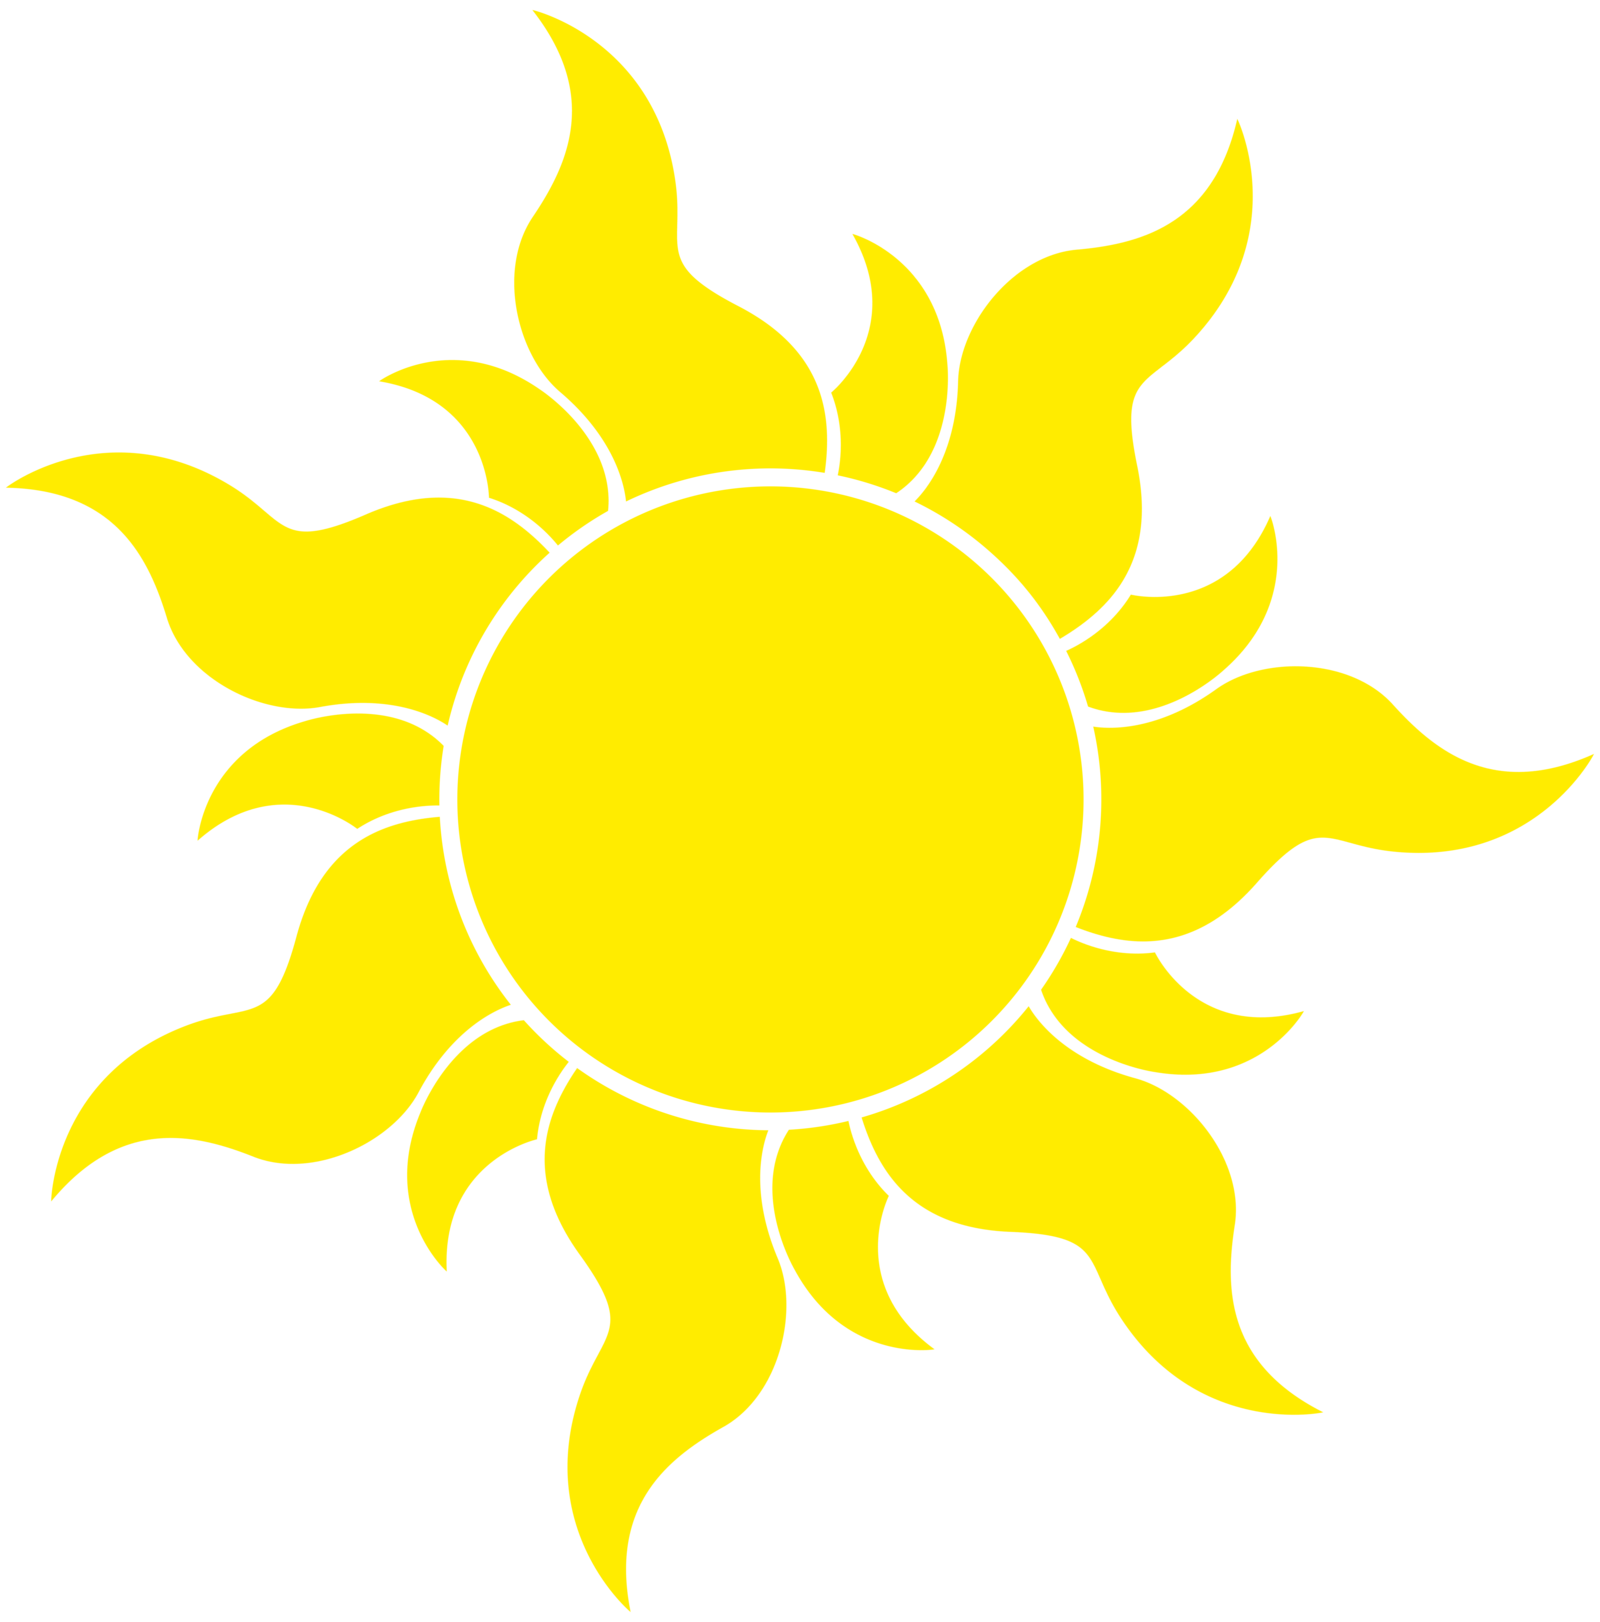 1600x1622 Free Sunflower Clip Art